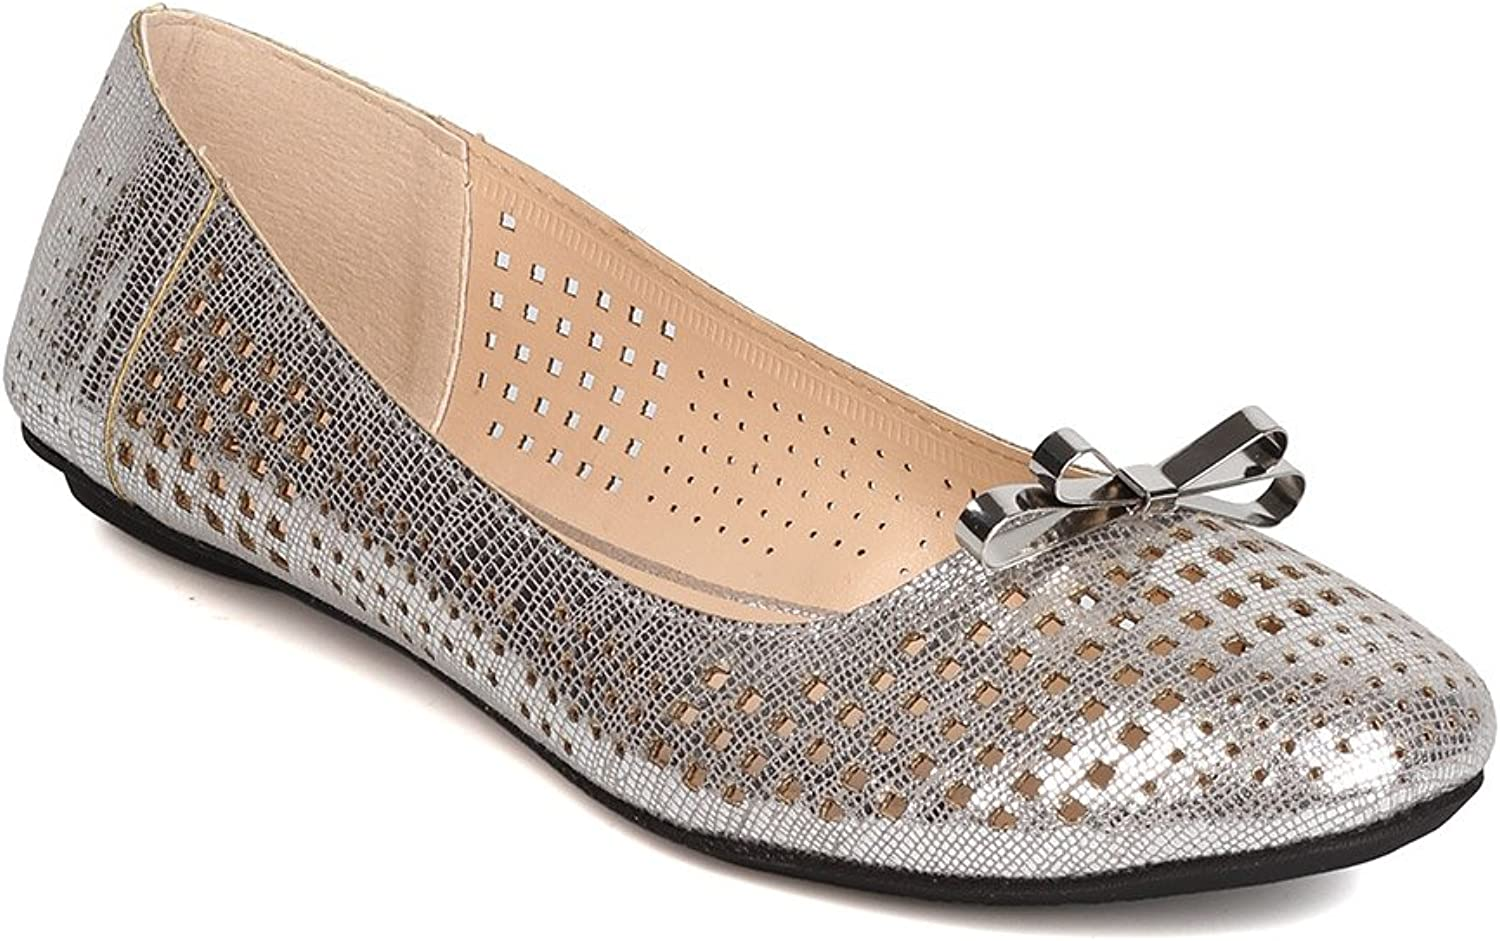 Qupid Women Metallic Leatherette Perforated Bow Tie Ballet Flat FI21 - Silver